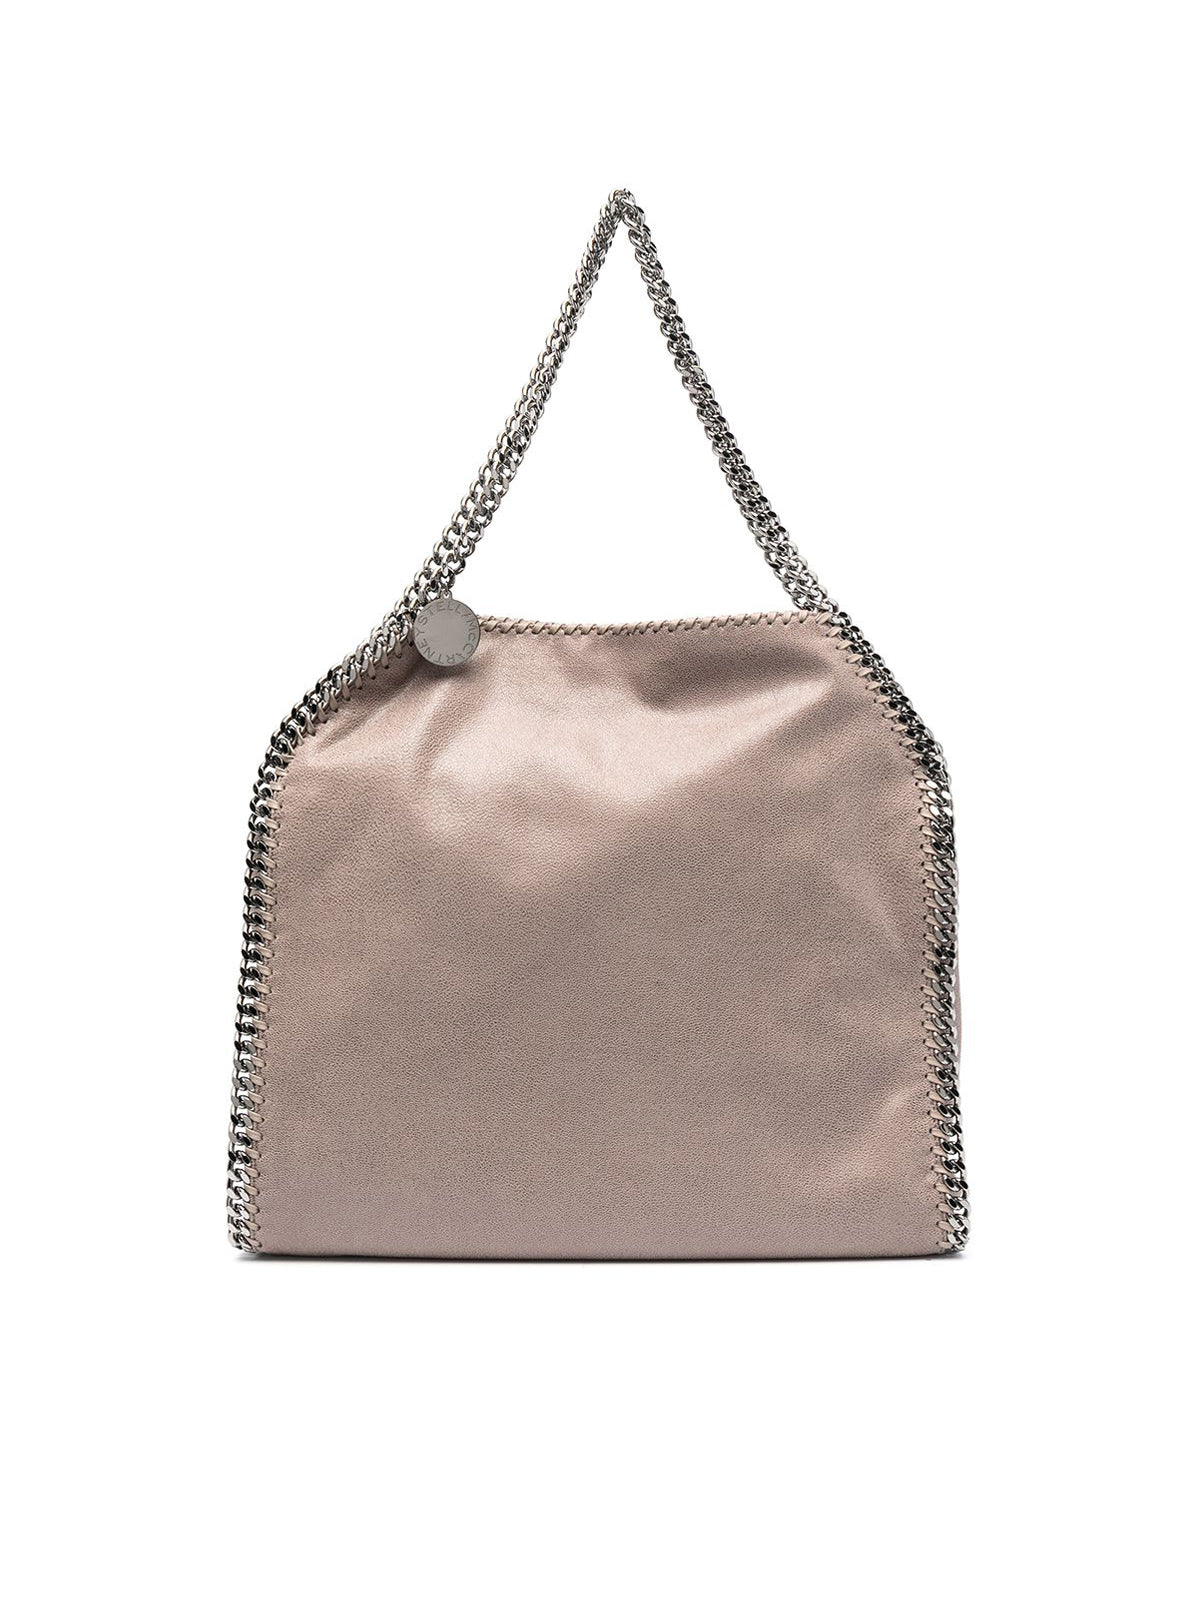 Big Falabella tote bag